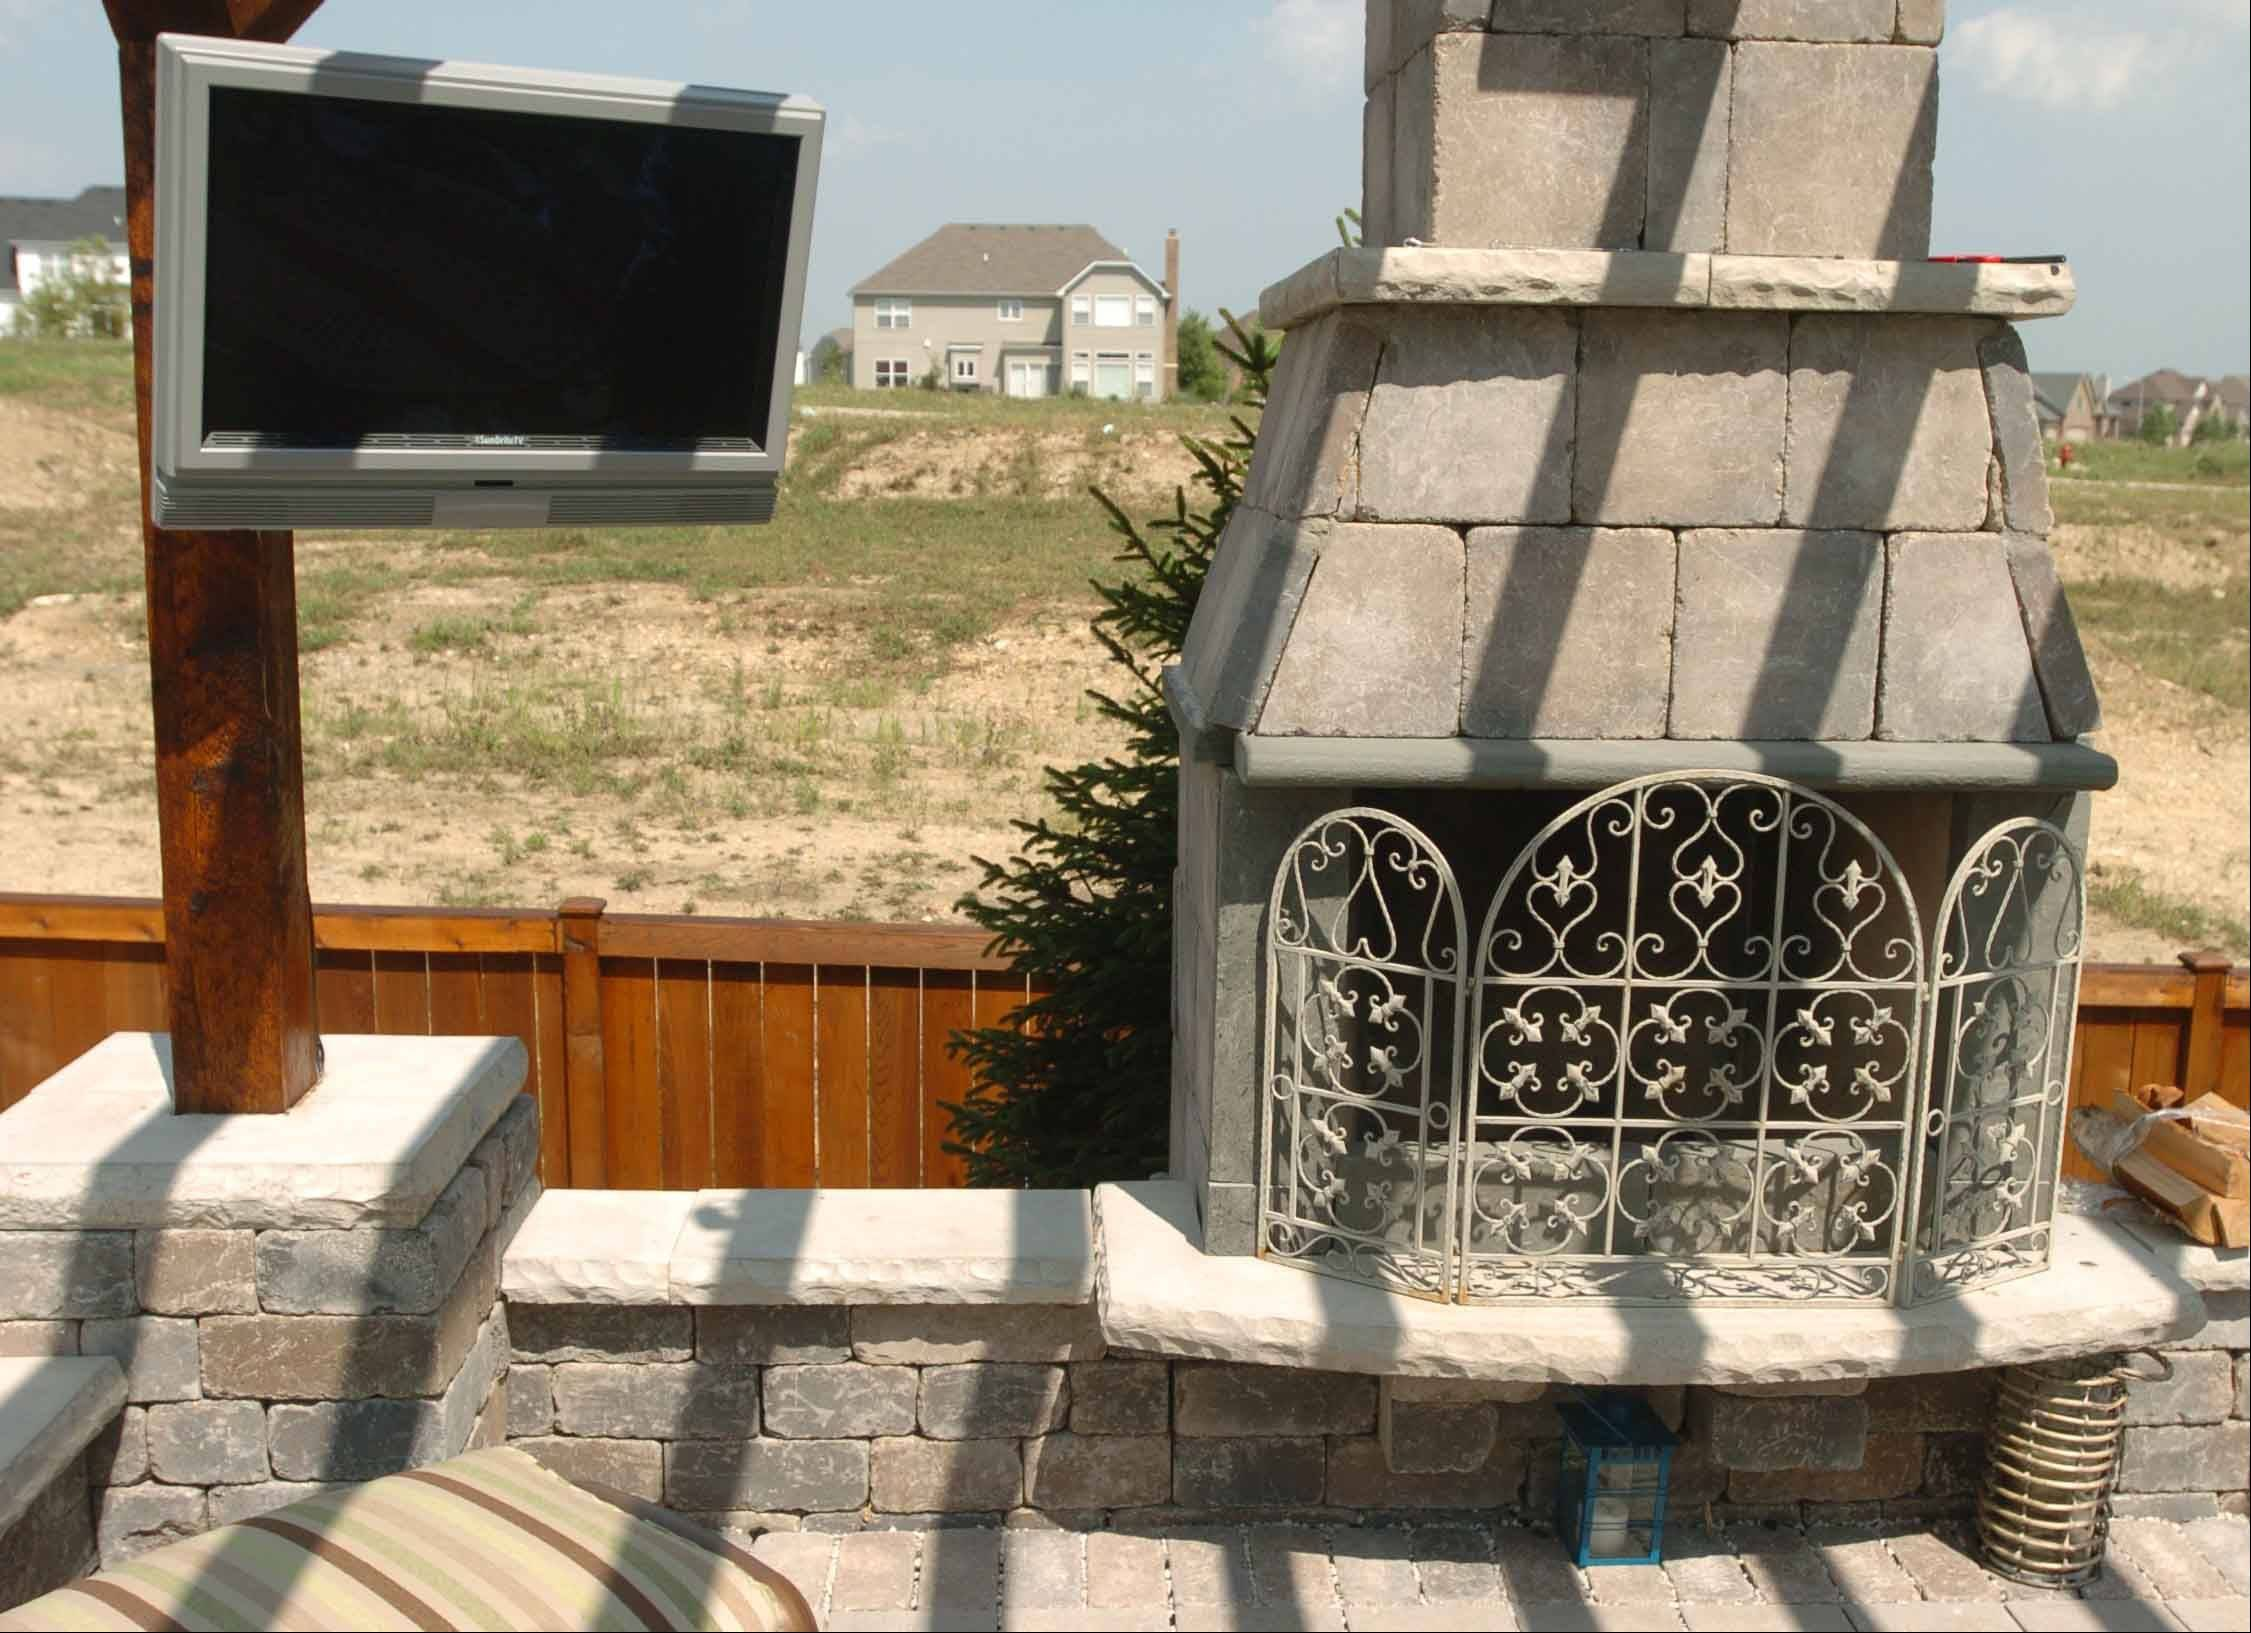 A special outdoor plasma television hangs by fireplace at the Jakovich home in Plainfield.